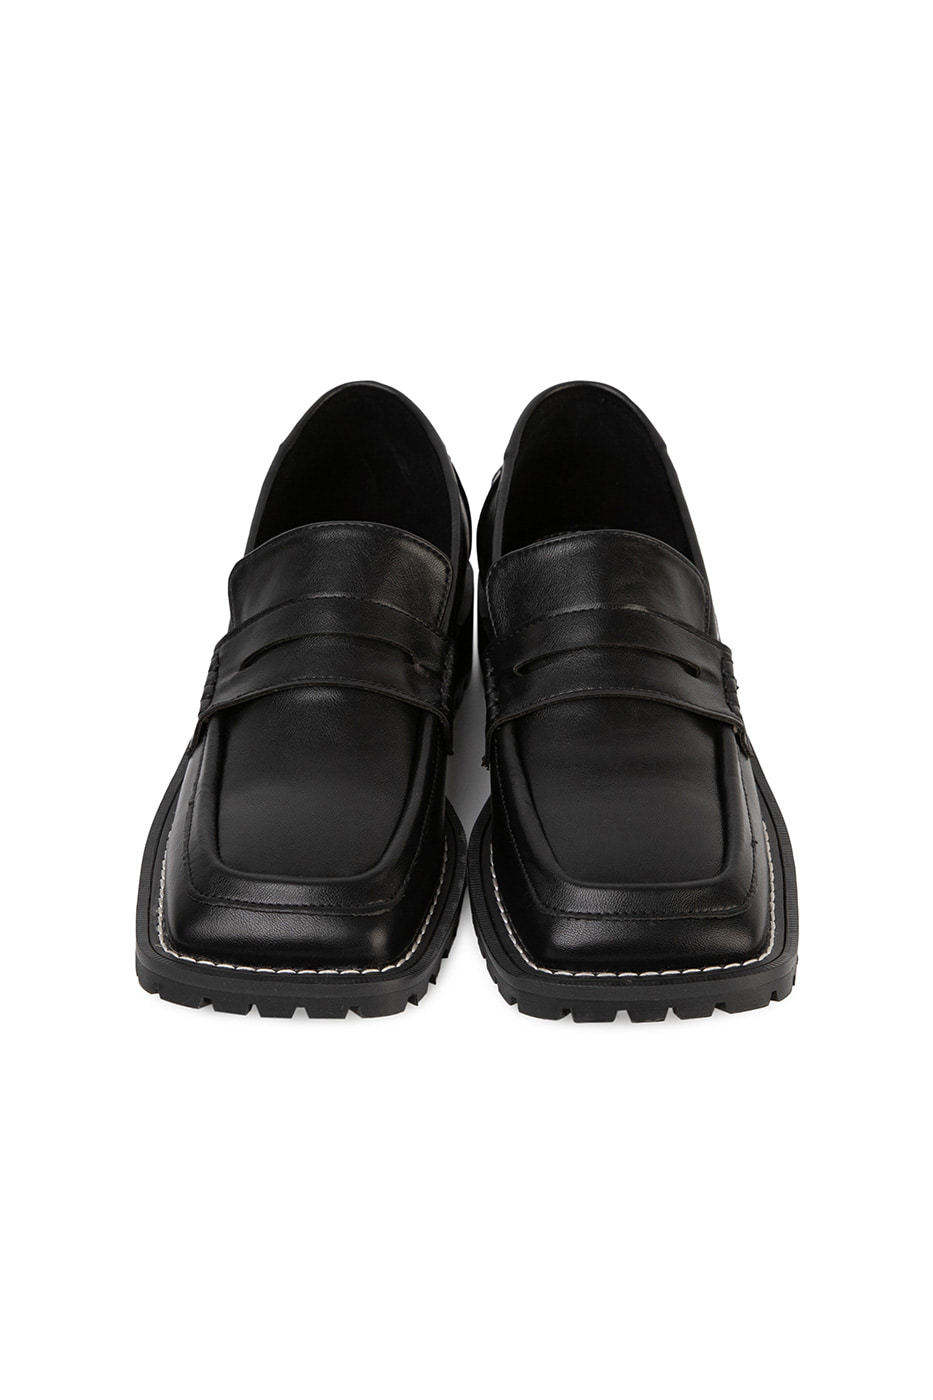 Mond penny loafers